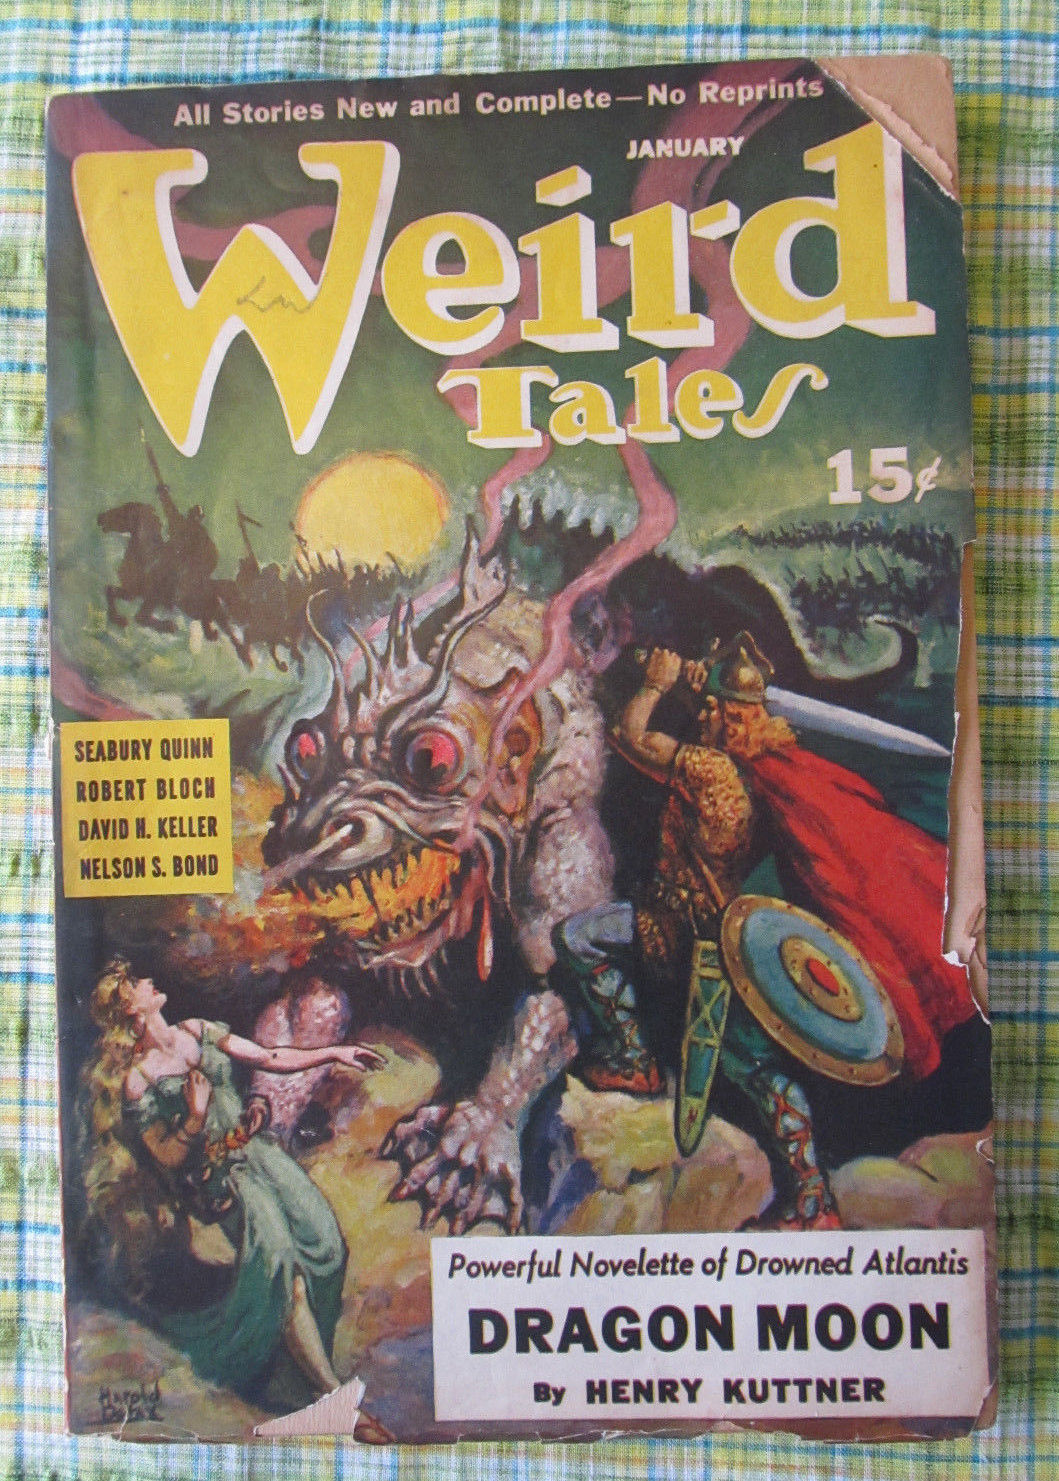 Primary image for Vtg horror fiction Weird Tales Jan 1941 short stories Quinn Bloch De lay